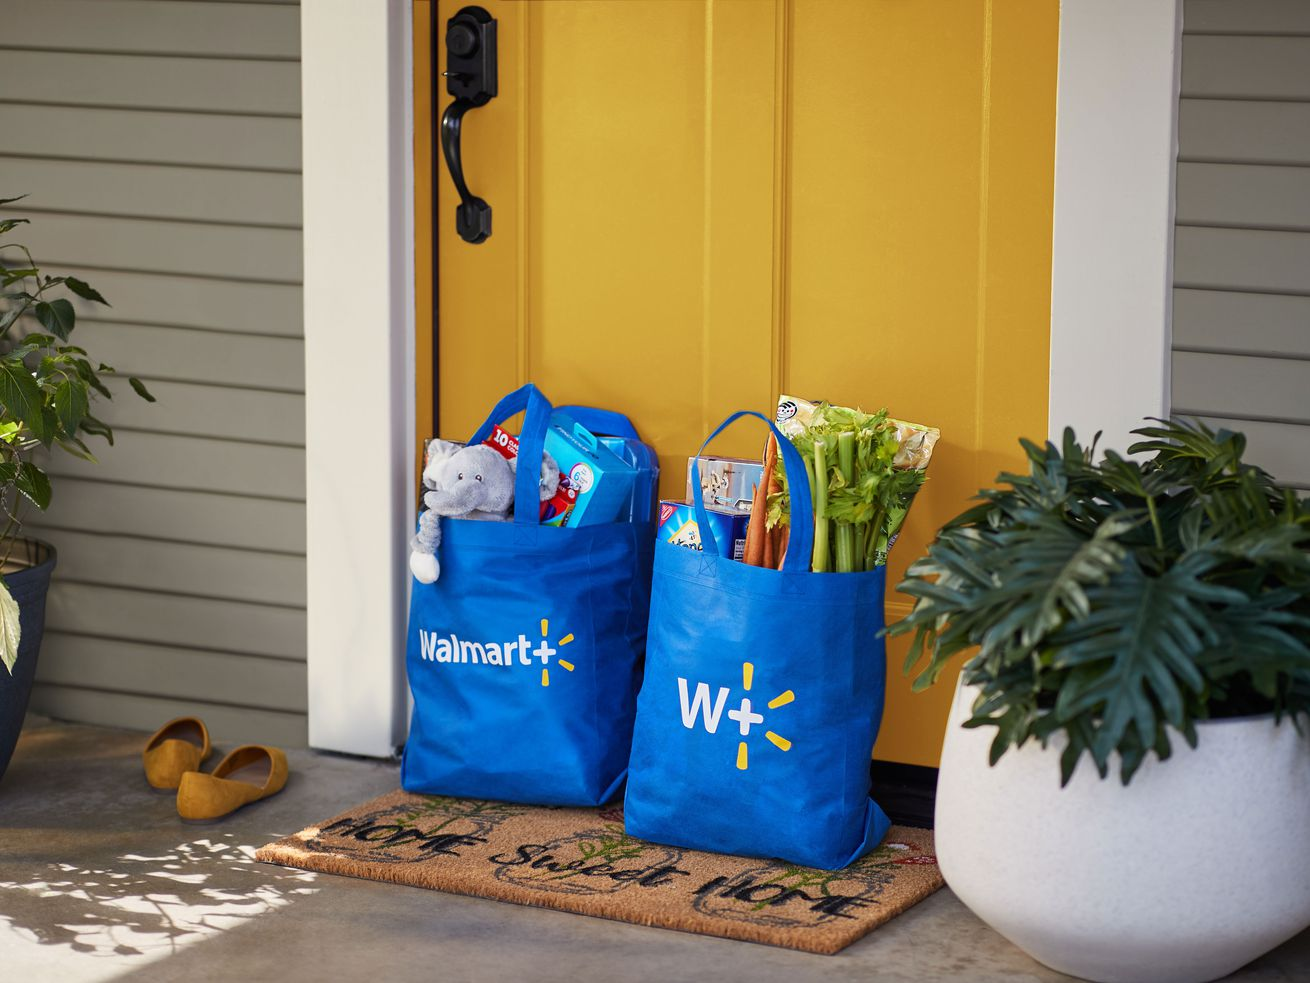 Two Walmart+ bags filled with groceries and other merchandise sit in front of the front door of a house